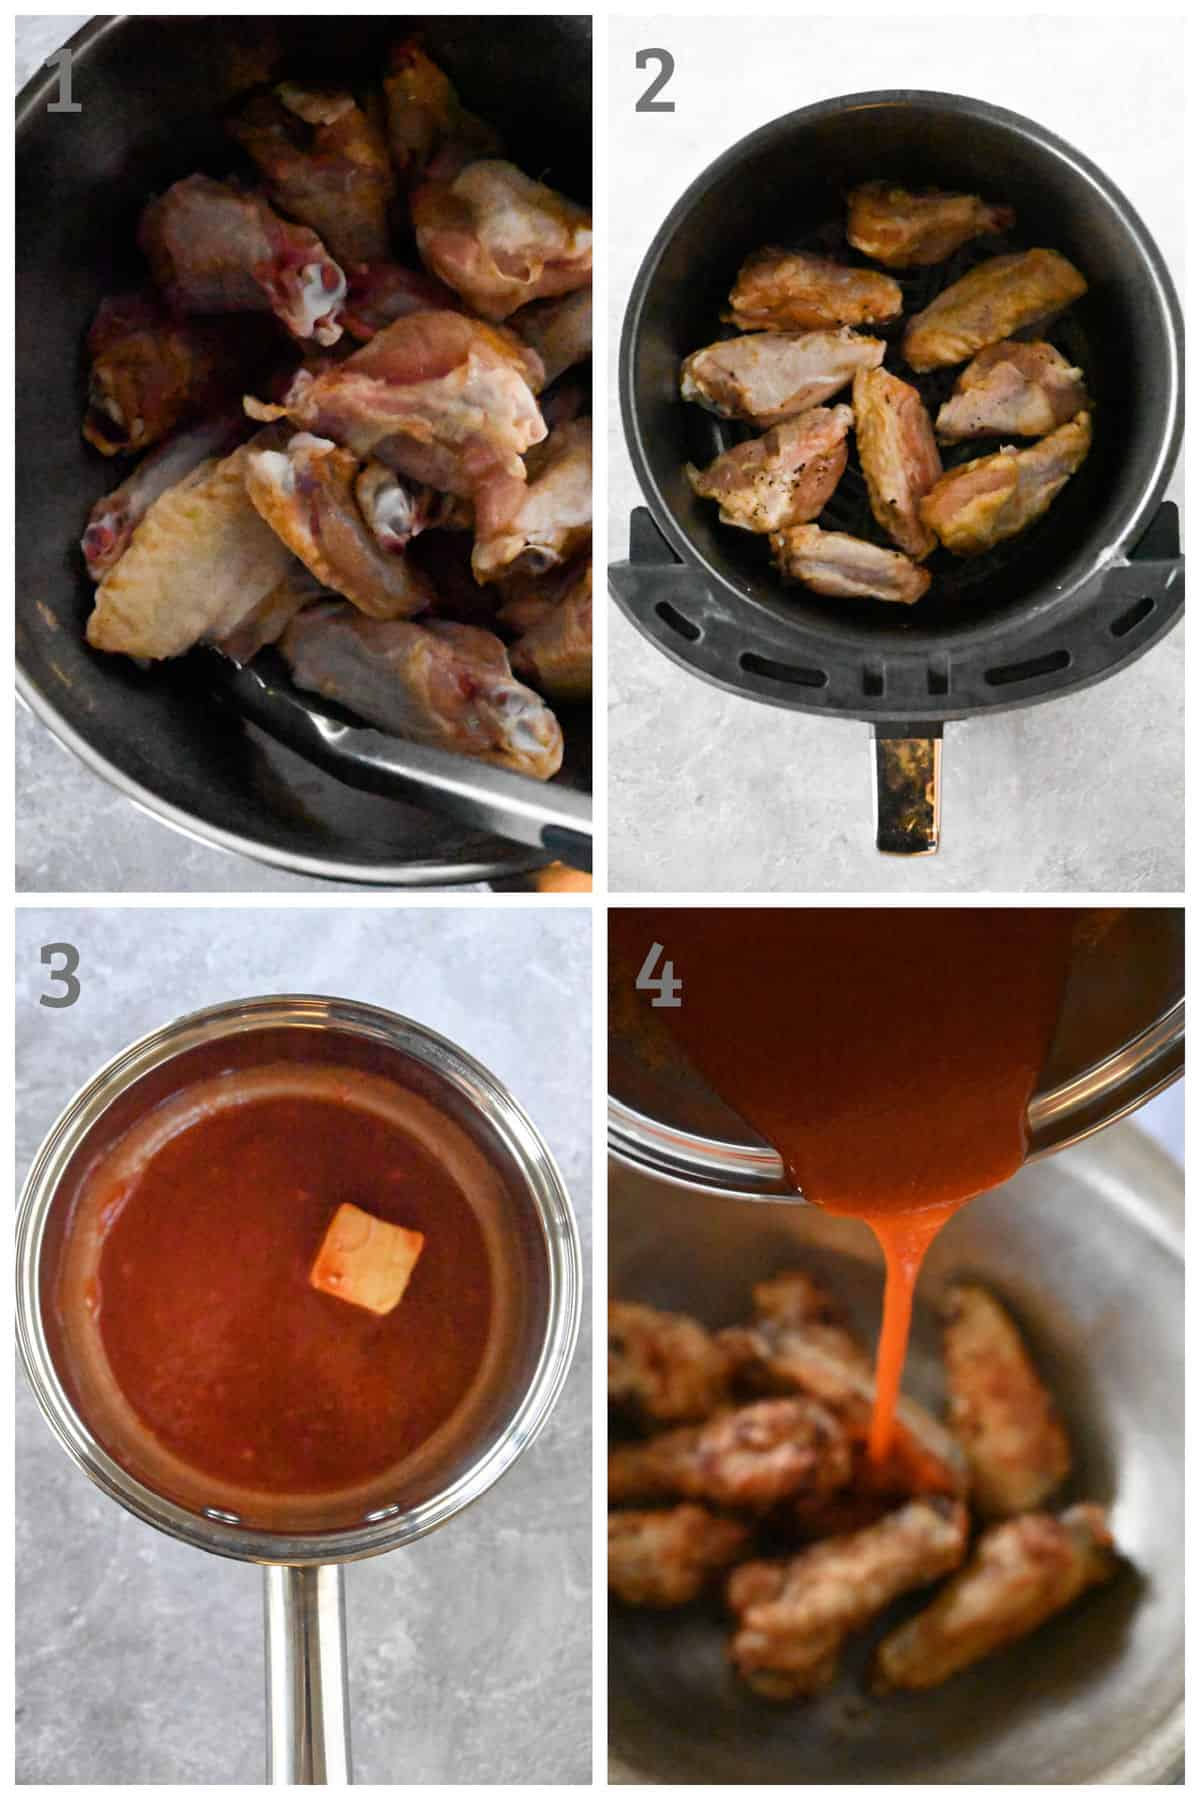 step by step instructions for making chicken wings in an air fryer